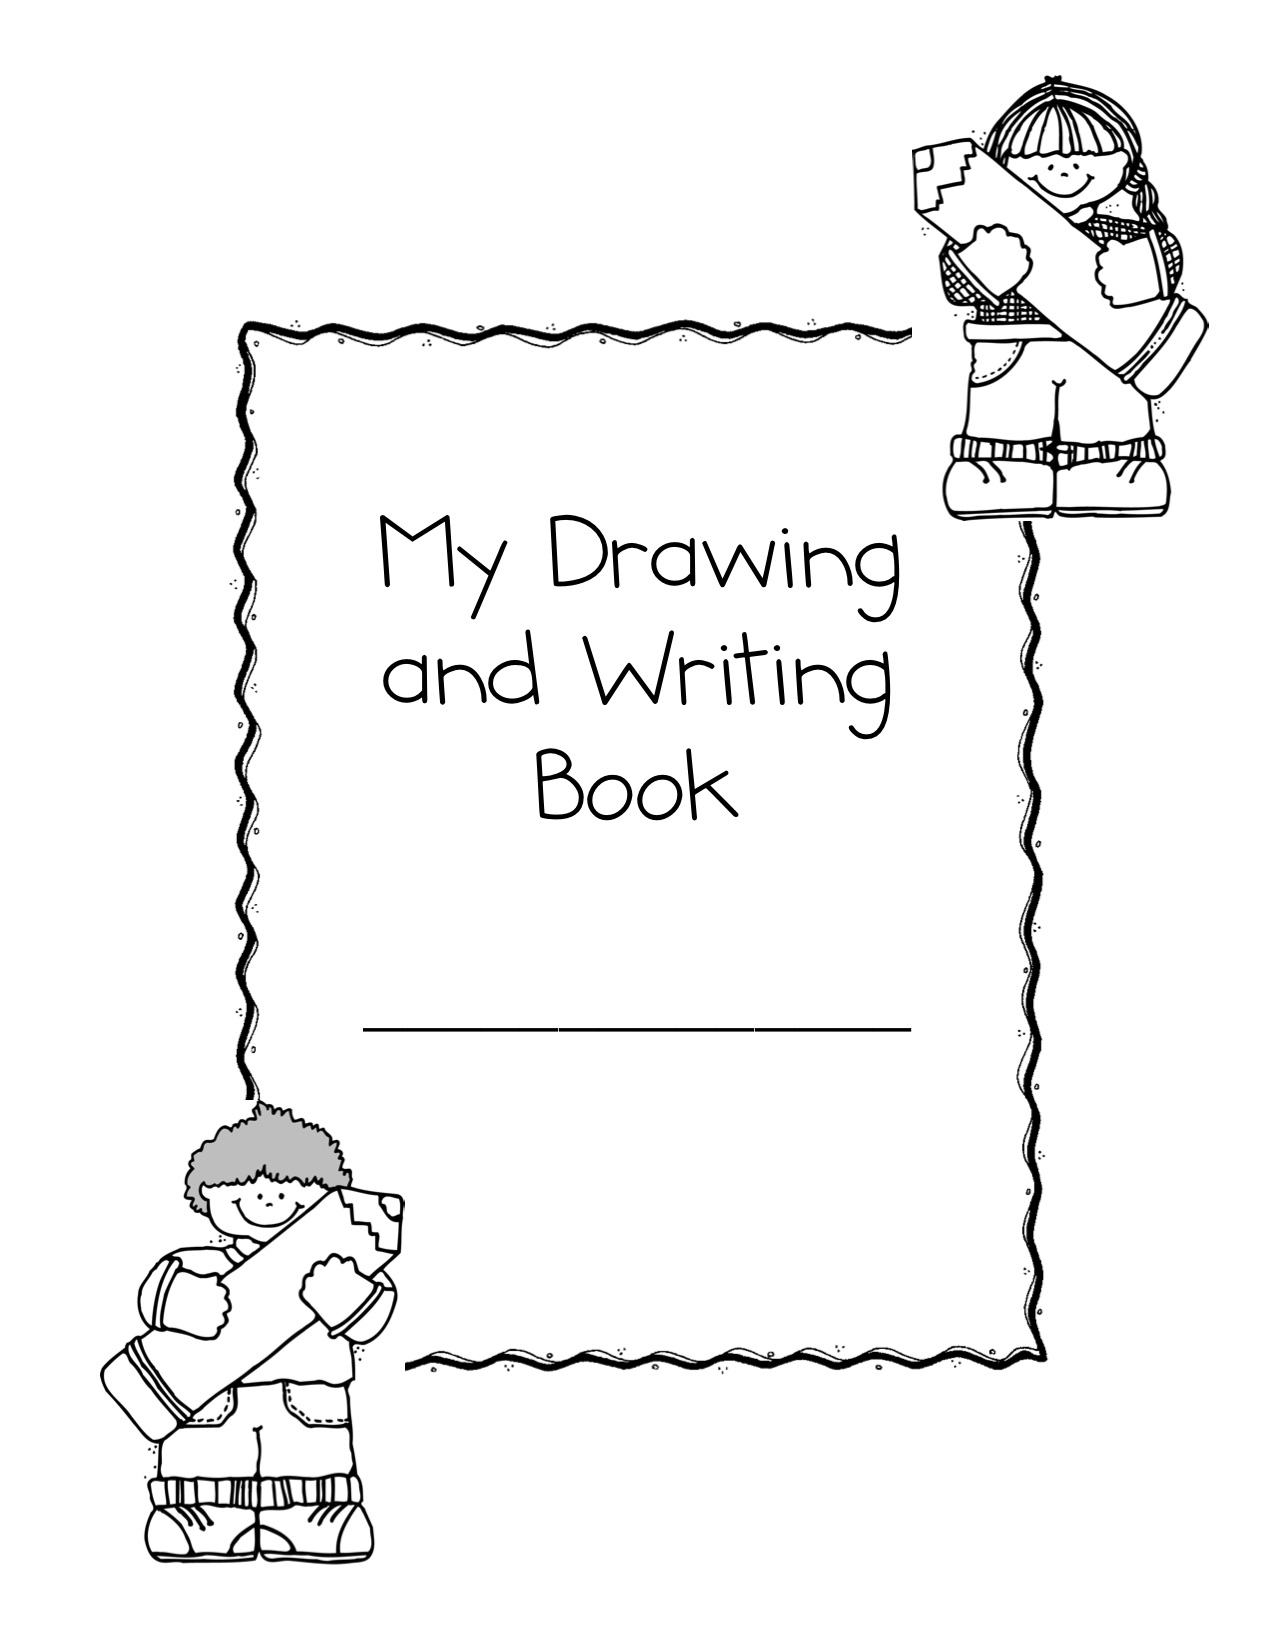 Cover Page Of Drawing Book : More first day stuff kindergarten nana